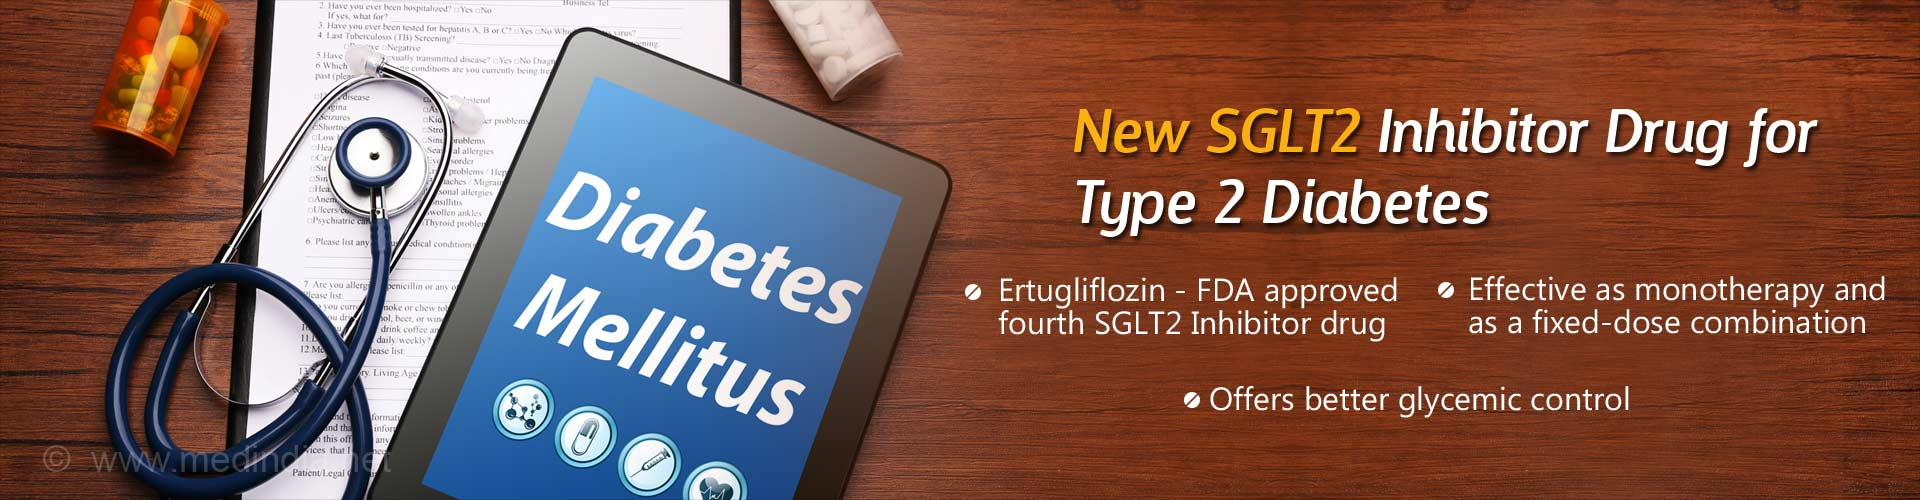 Ertugliflozin Approved By US FDA for Treating Type 2 Diabetes